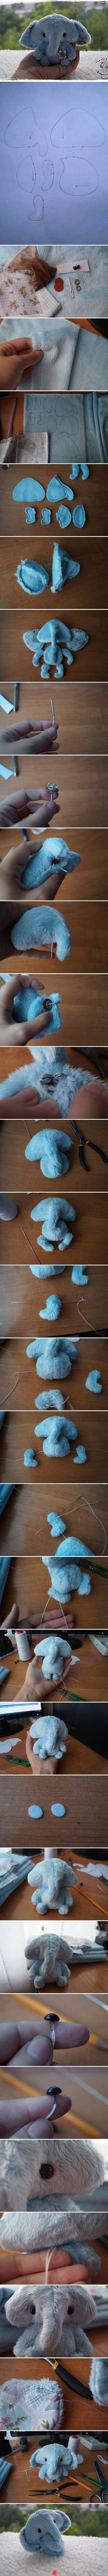 DIY Stuffed Animal Elephant diy crafts easy crafts craft idea crafts ideas diy ideas diy crafts diy idea do it yourself diy projects diy craft handmade sewing kids crafts diy sewing kids craft sewing ideas craft sewing sewing projects Easy Diy Crafts, Cute Crafts, Felt Crafts, Fabric Crafts, Crafts For Kids, Sewing Toys, Sewing Crafts, Sewing Projects, Diy Projects